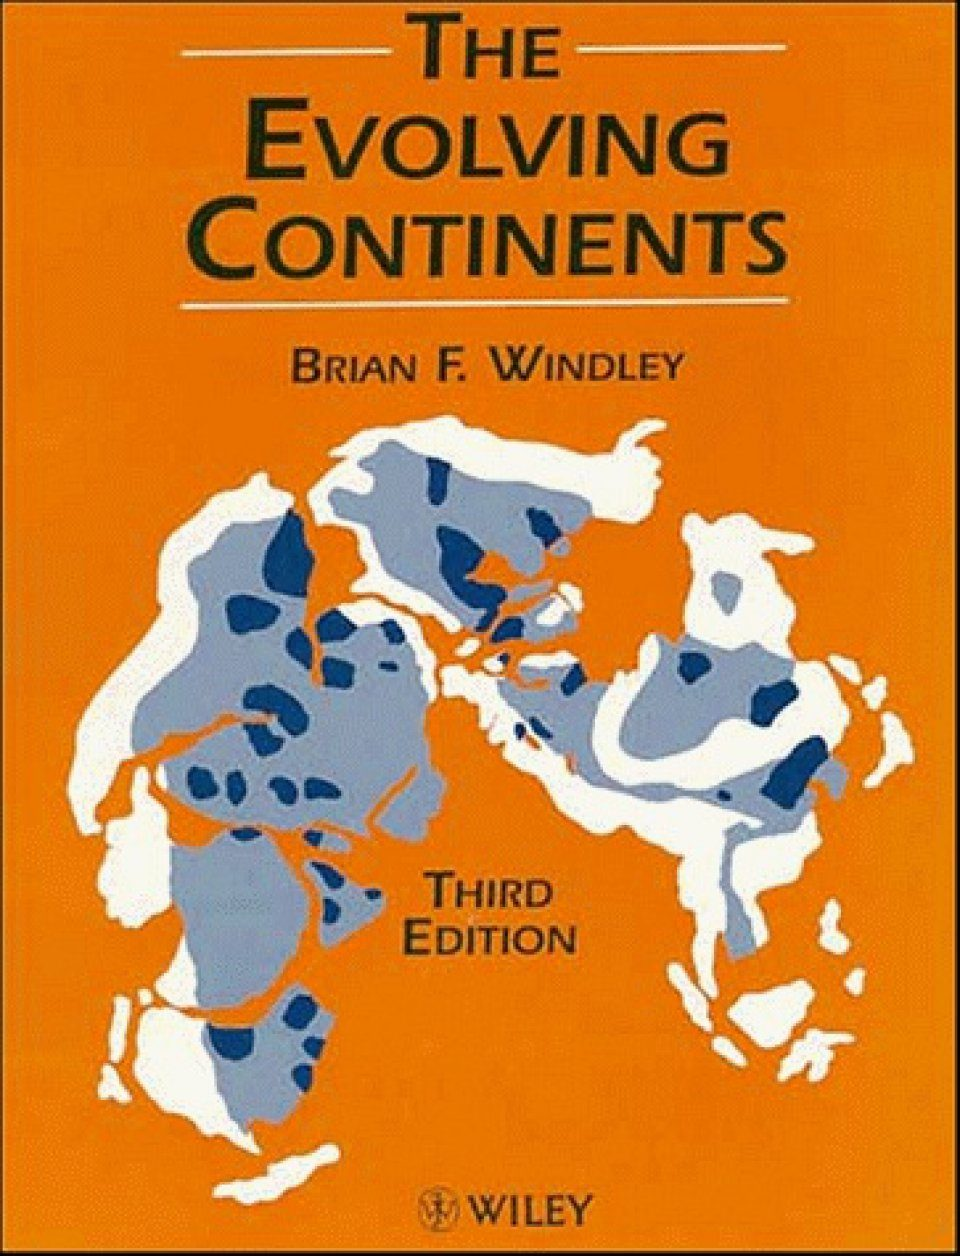 The Evolving Continents